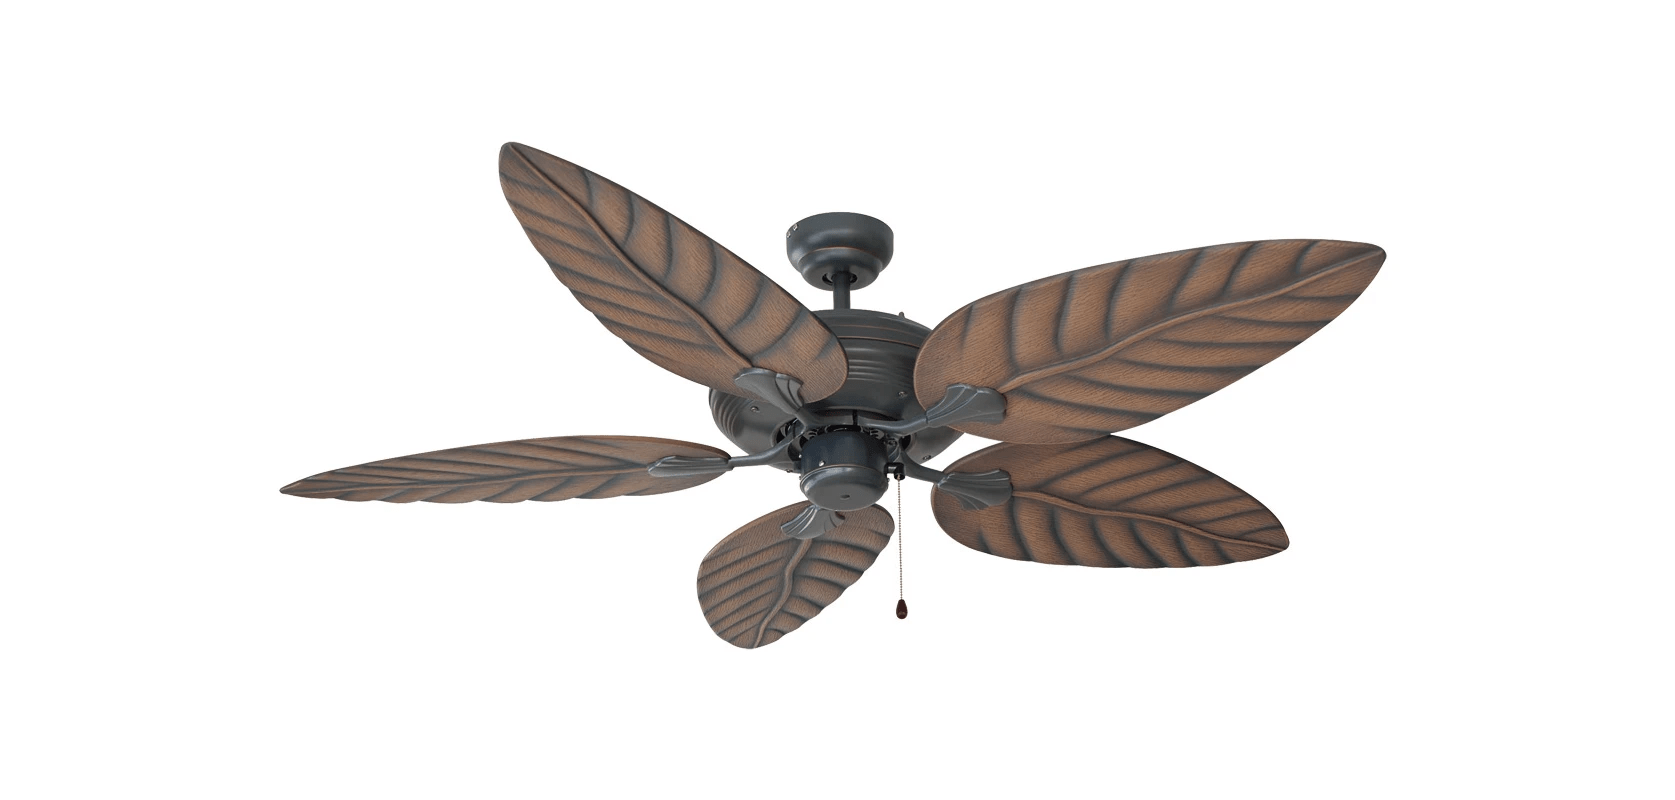 Leaf Ceiling Fan Blades Design House 154104 Oil Rubbed Bronze 52 Quot 5 Blade Ceiling